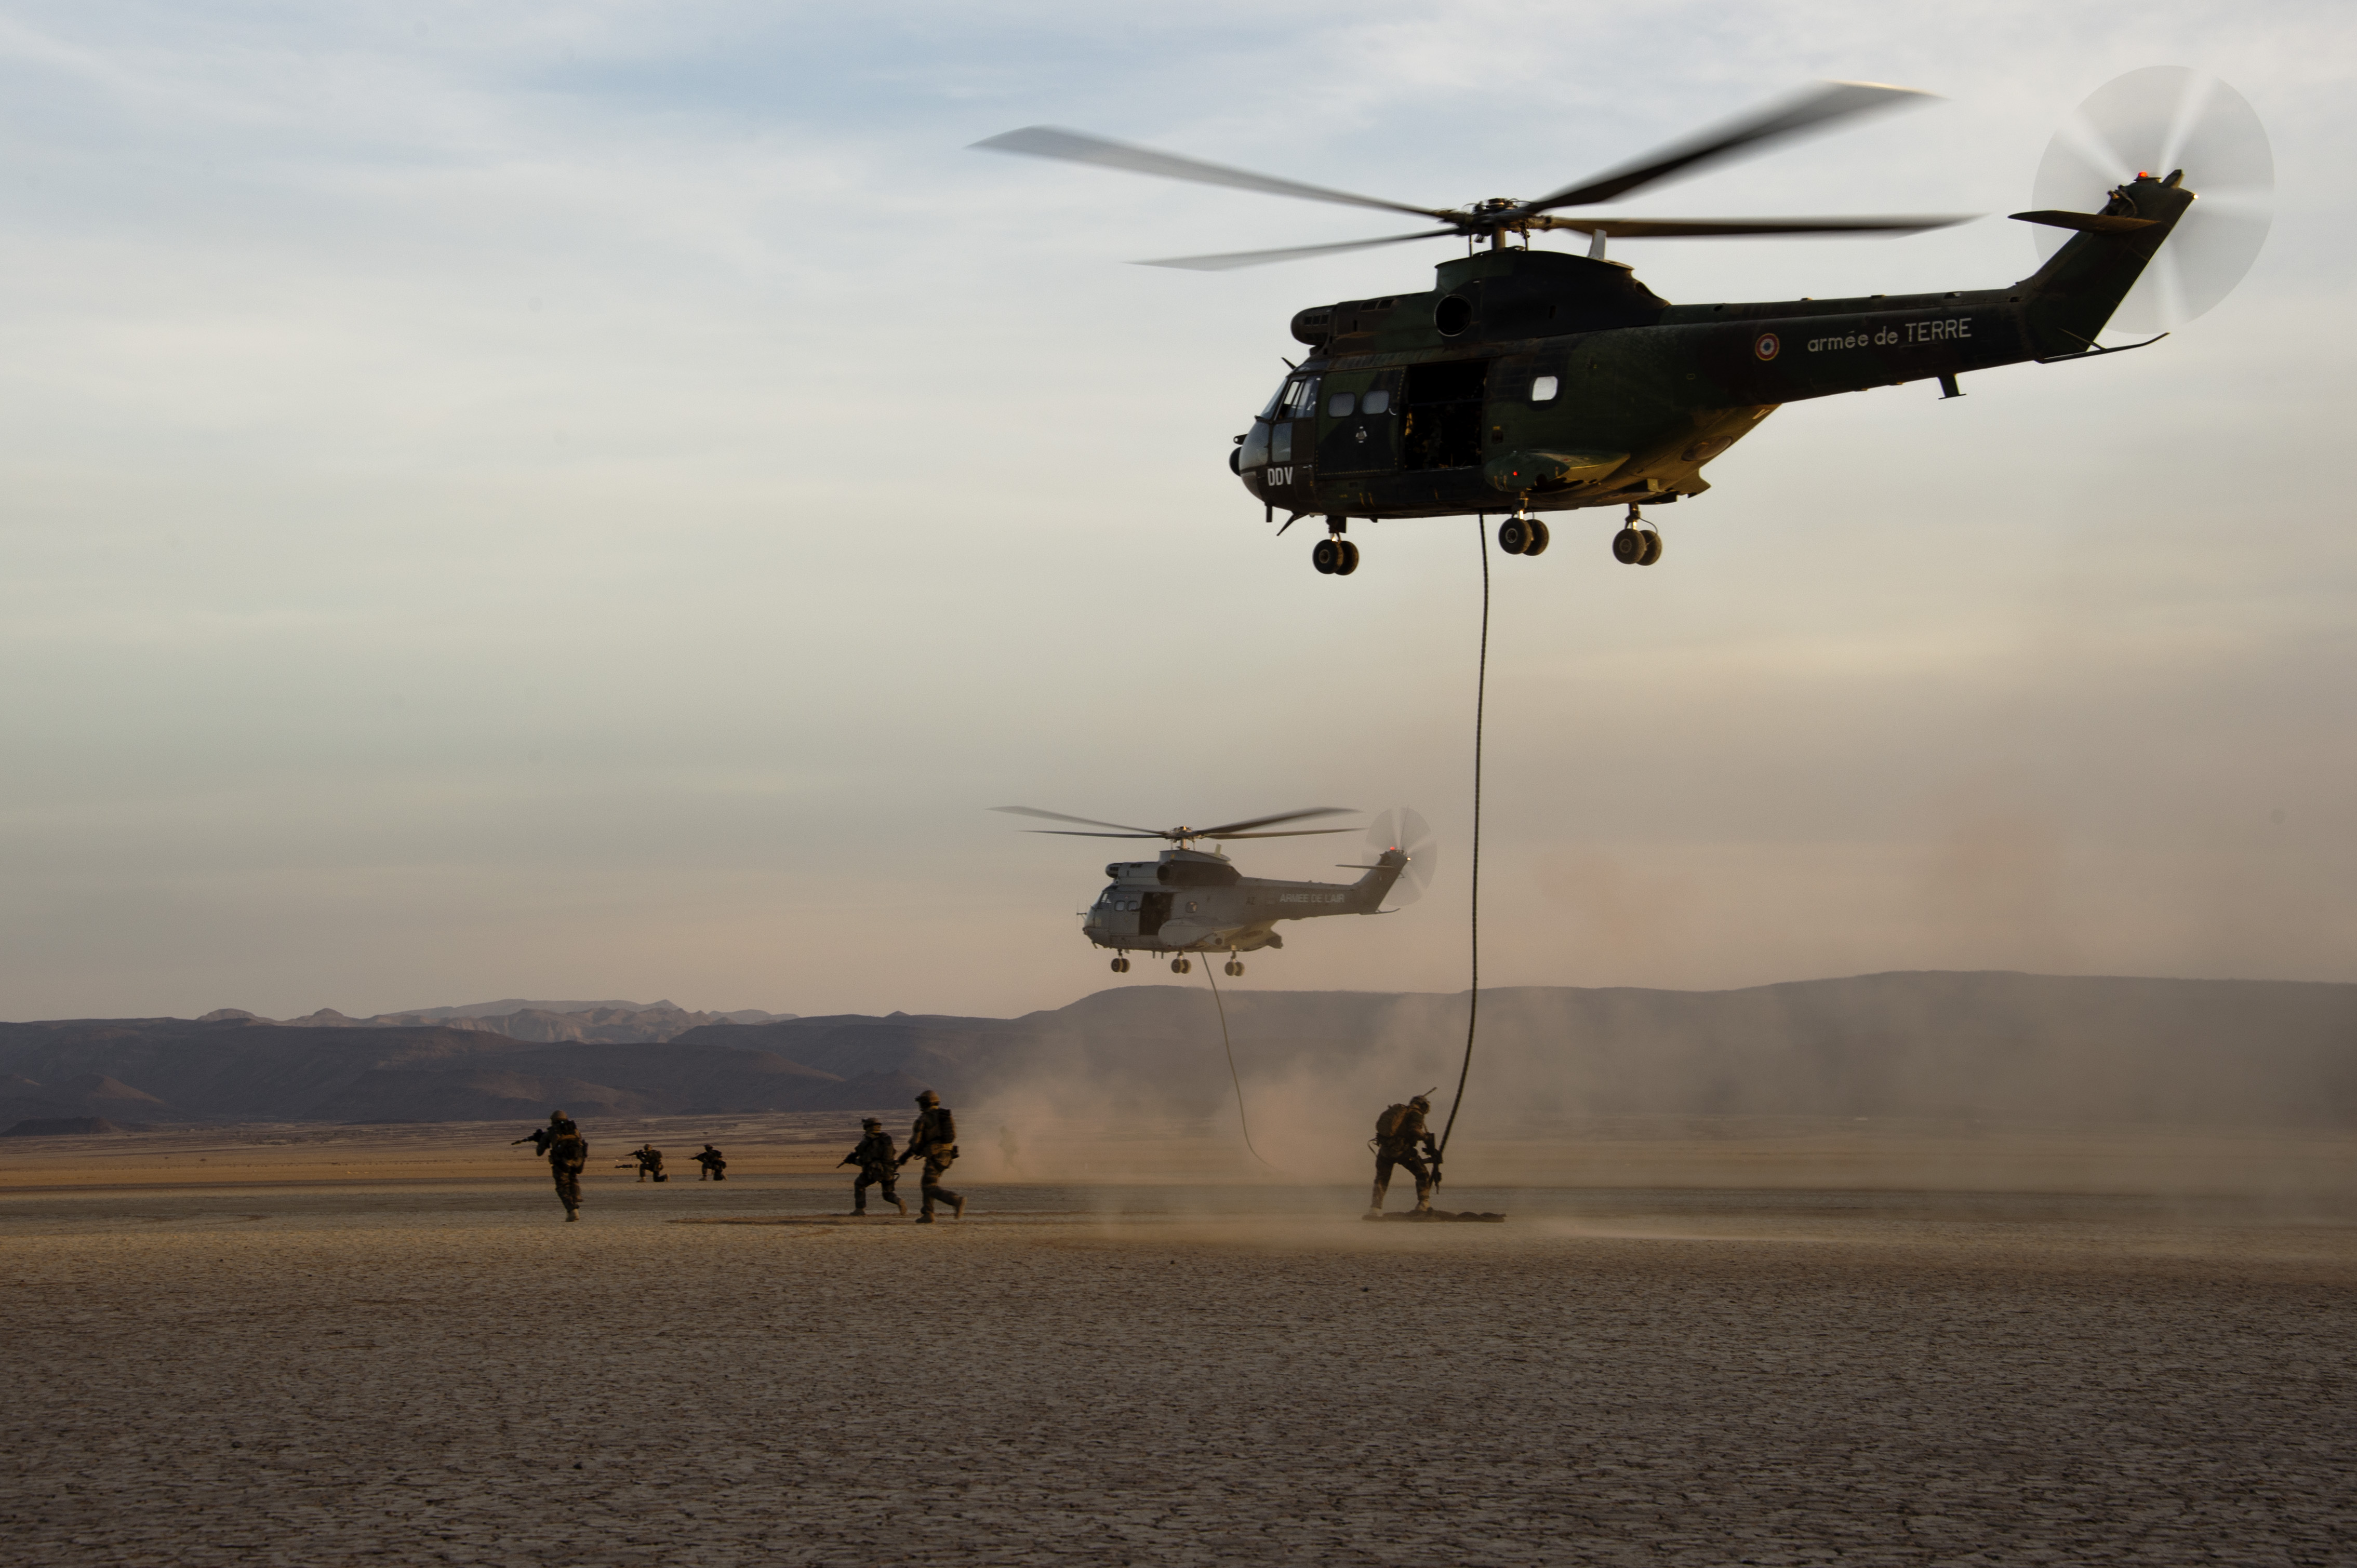 French military members repel out of two SA 330 Puma transport helicopters to secure a landing site during the French live fire demonstration near Grand Bara, Djibouti, Jan. 14, 2017. The SA 330 Puma is a medium lift, all-weather helicopter capable of transporting up to 16 people in and out of a battlefield. (U.S. Air National Guard photo by:  Staff Sgt. Christian Jadot)